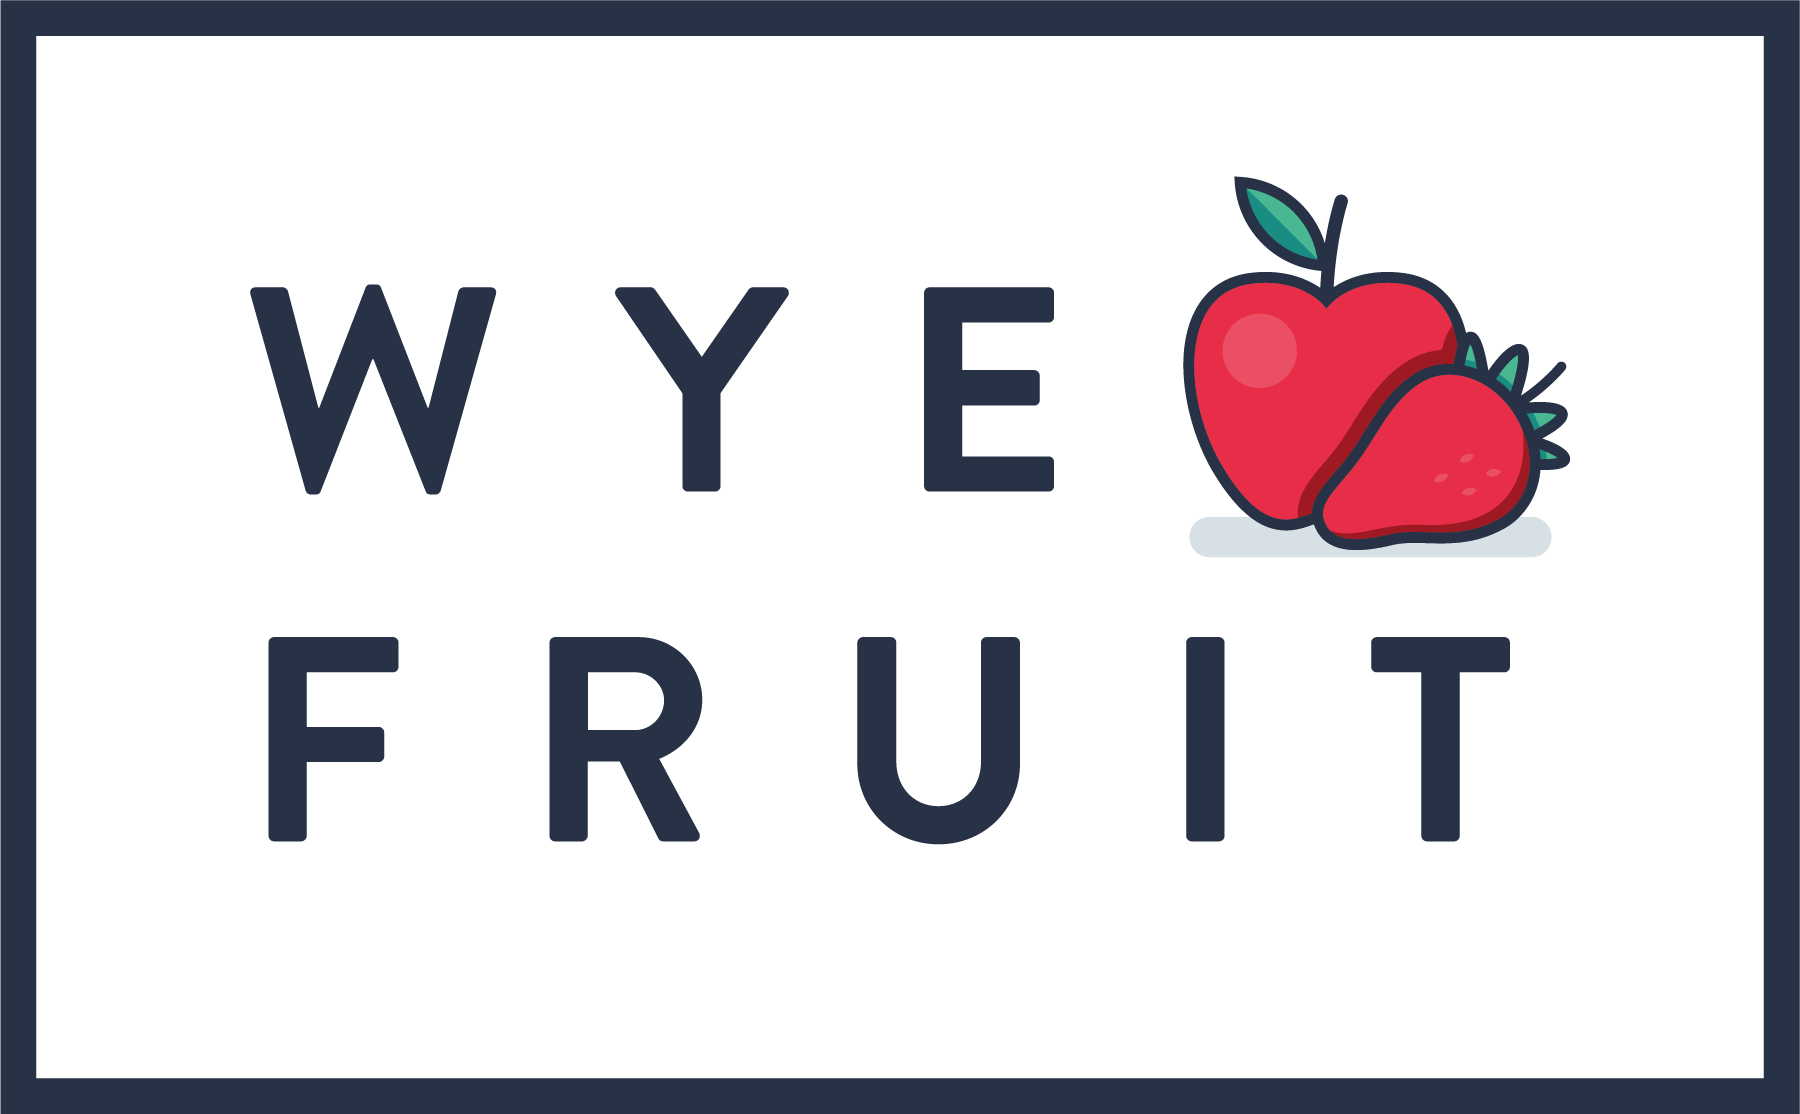 Wye Fruit Ltd